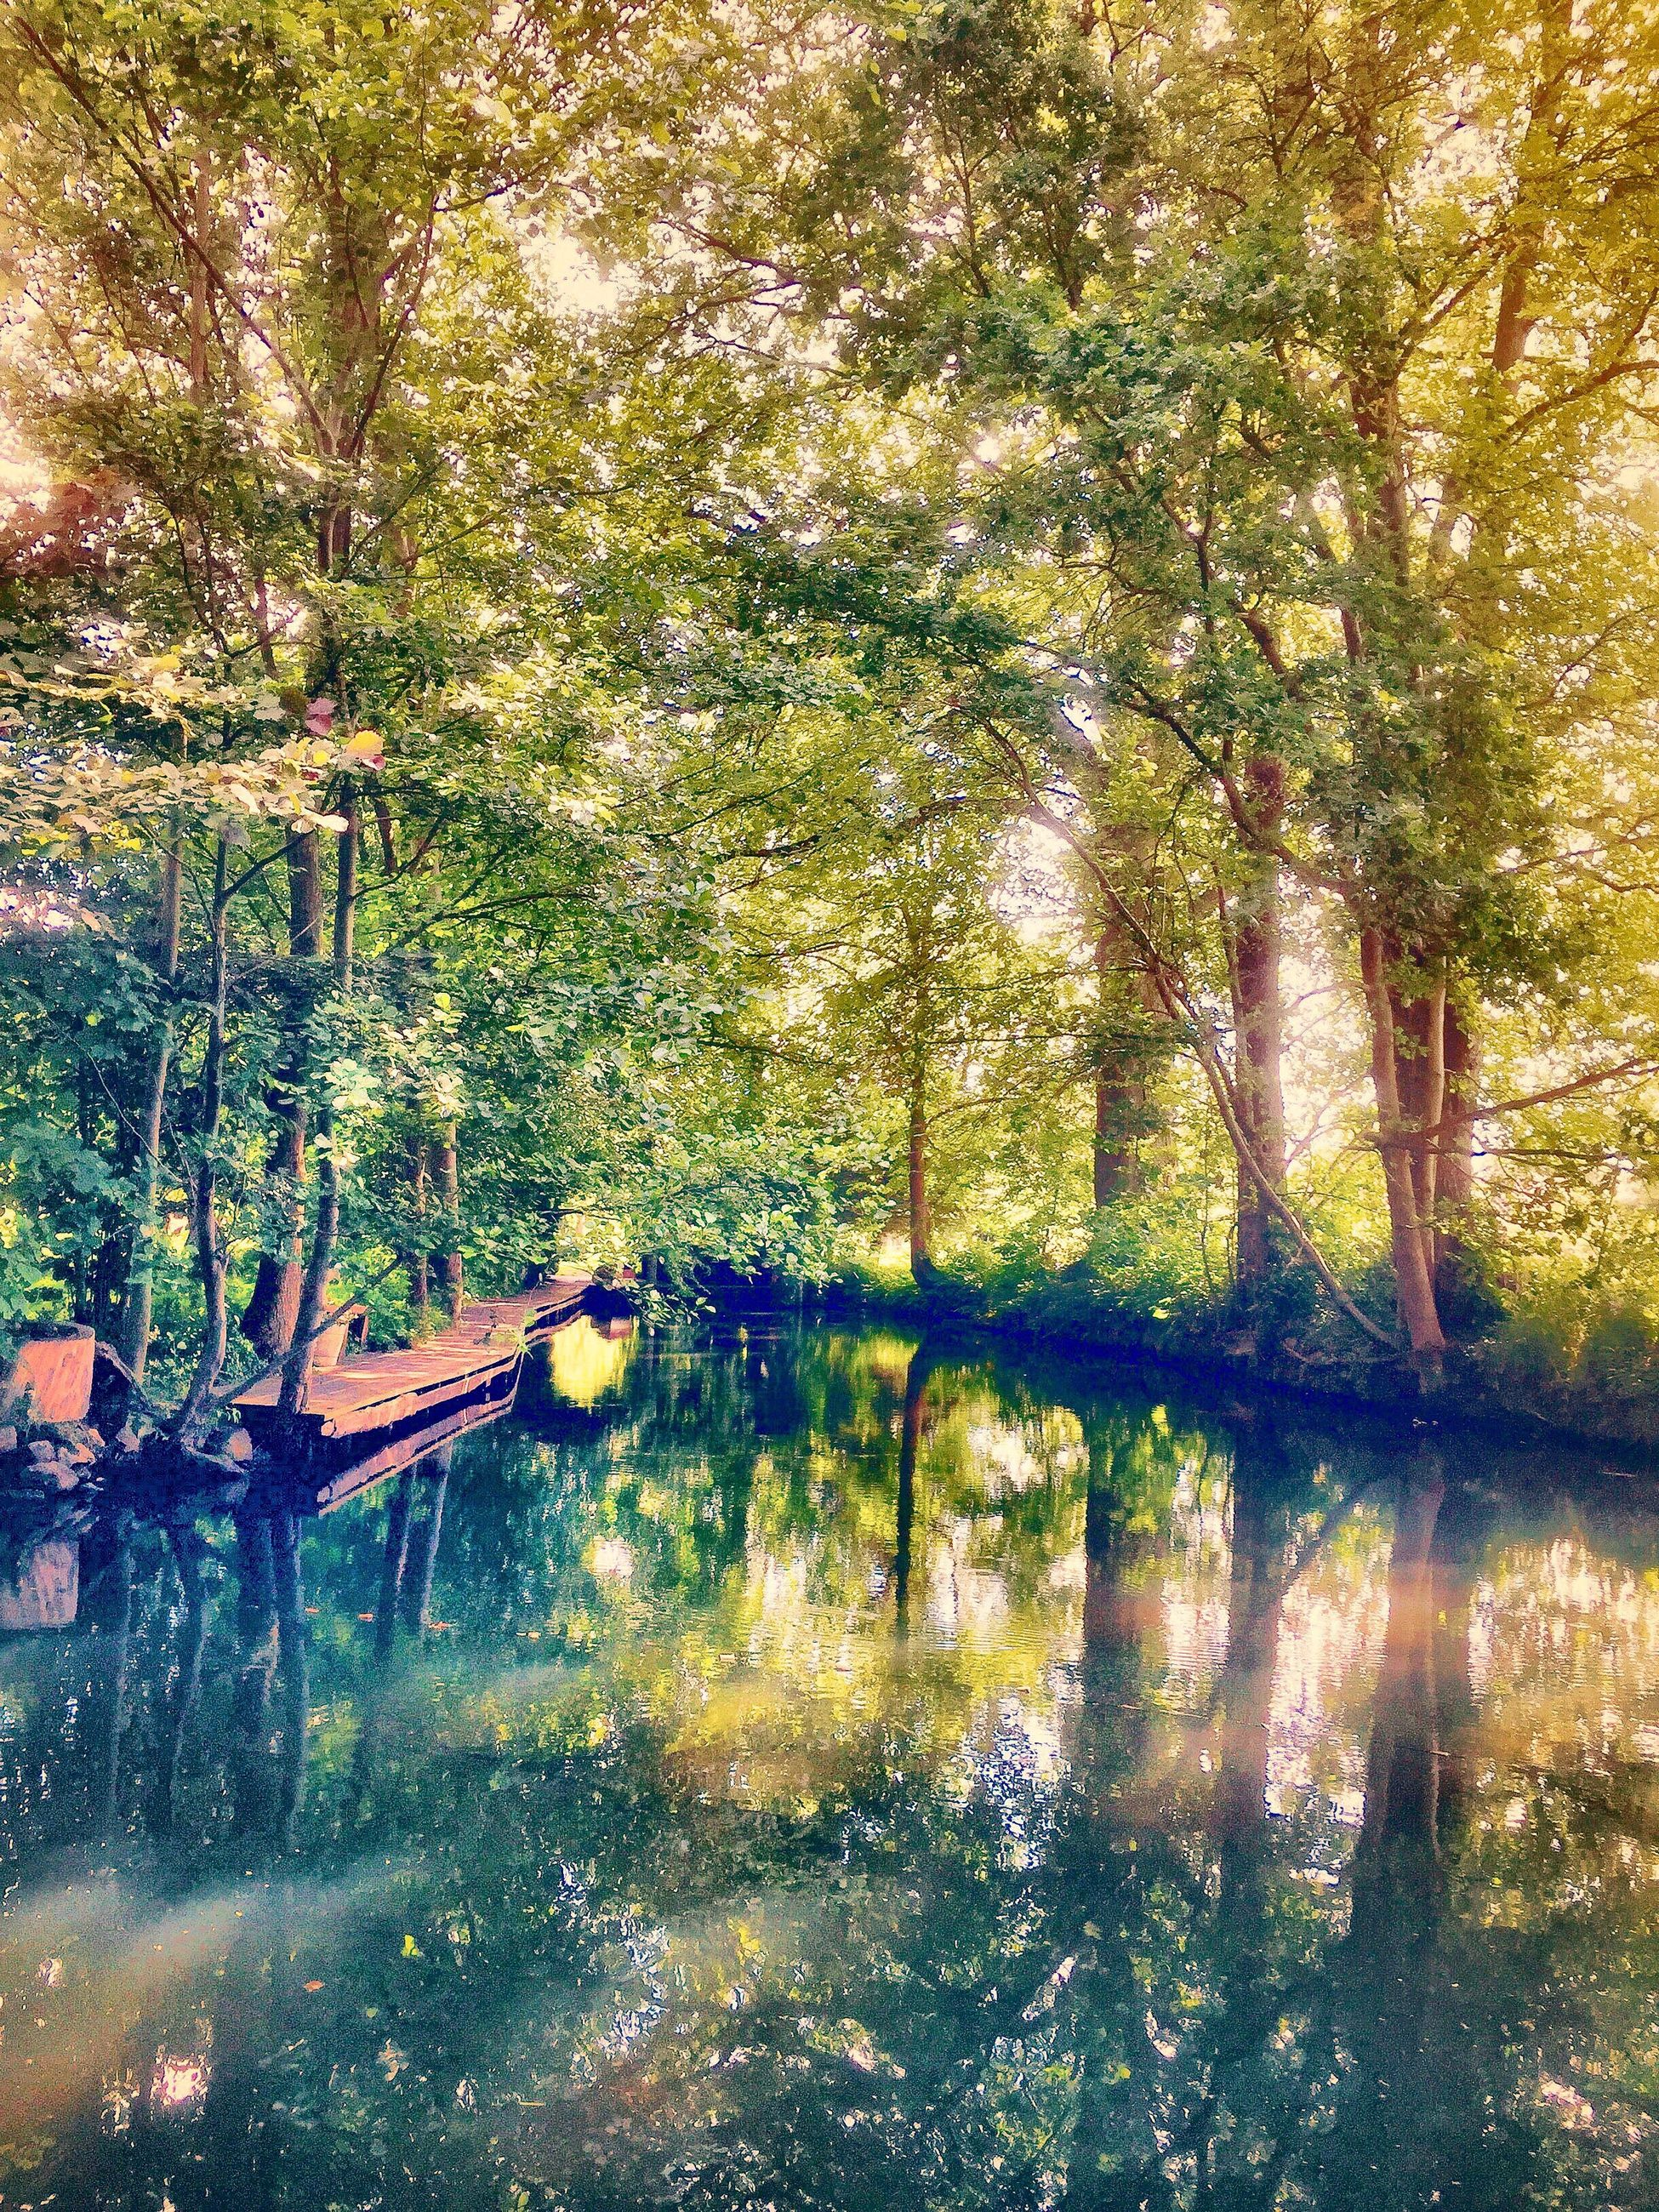 tree, nature, forest, outdoors, day, reflection, no people, tranquility, growth, beauty in nature